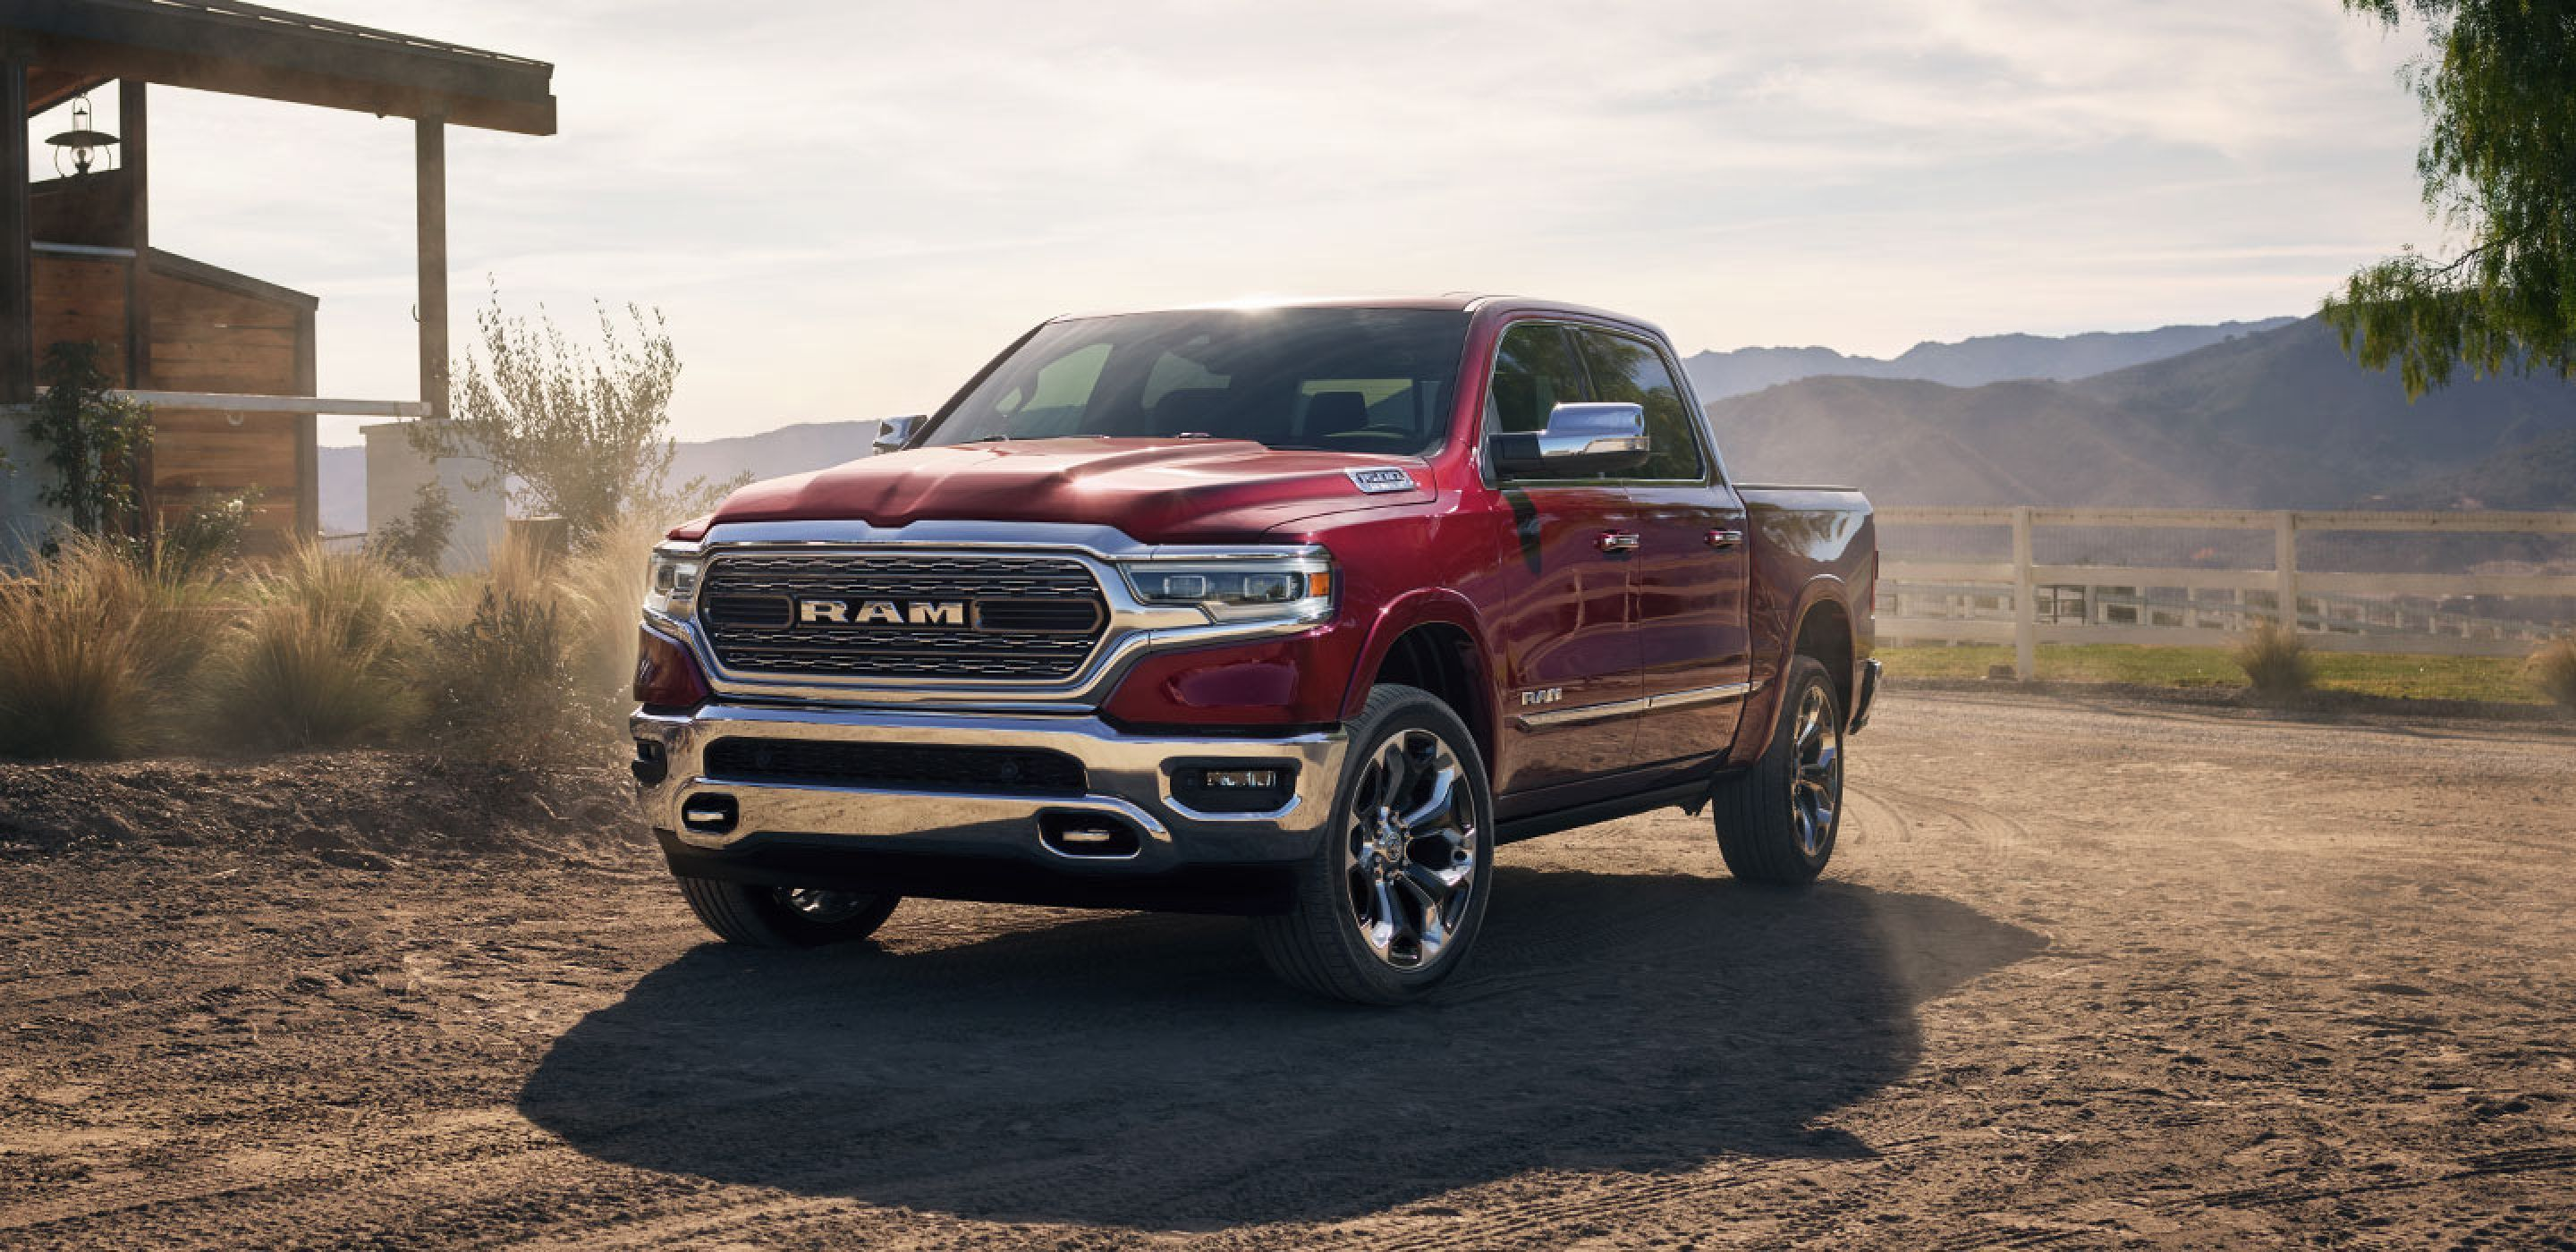 Image Result For 2019 Ram Dodge Truck Wallpaper Hd With Images